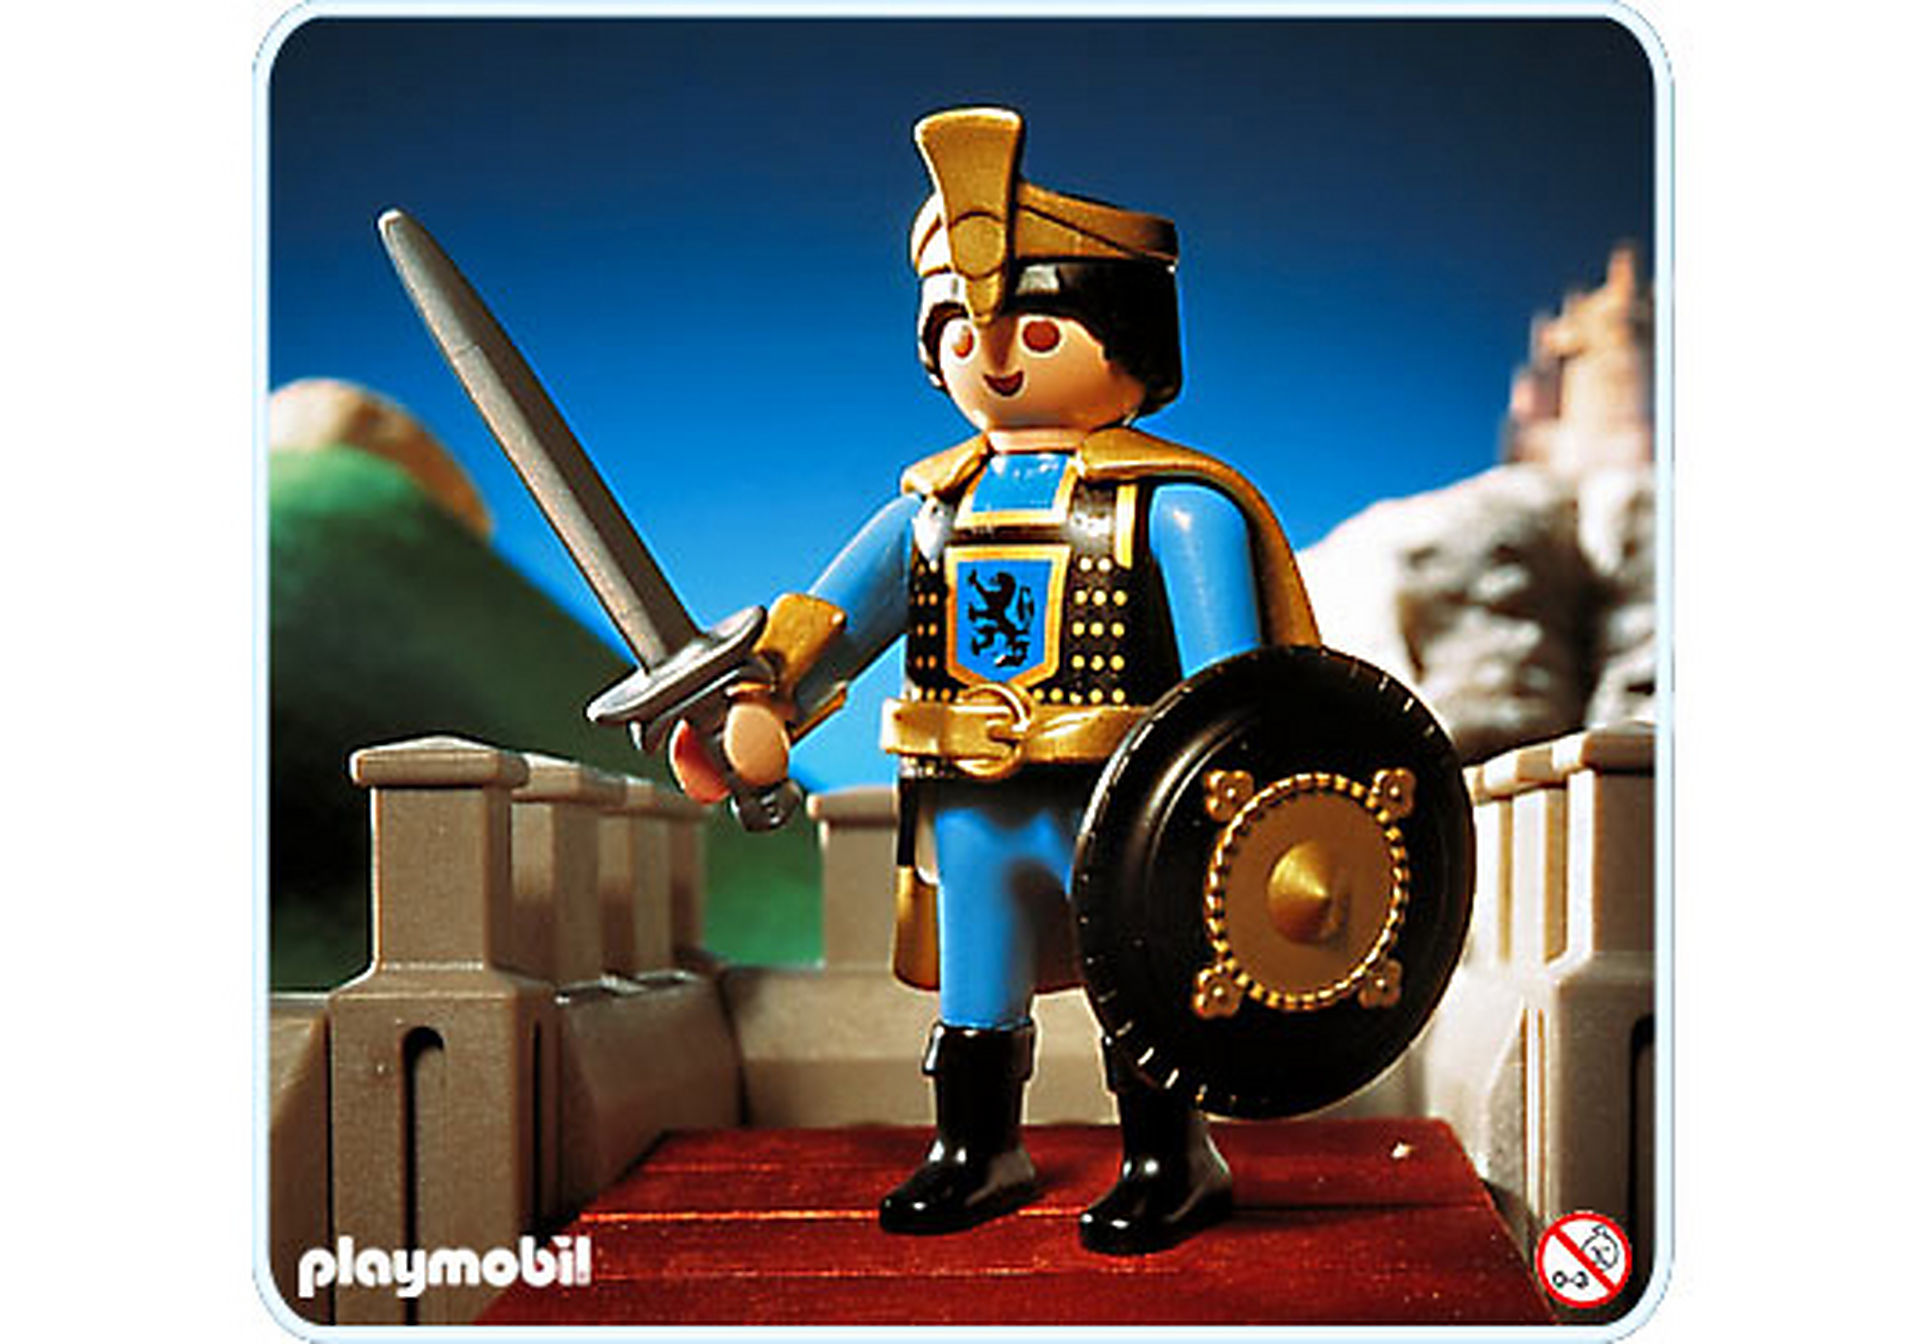 http://media.playmobil.com/i/playmobil/4505-A_product_detail/Prince